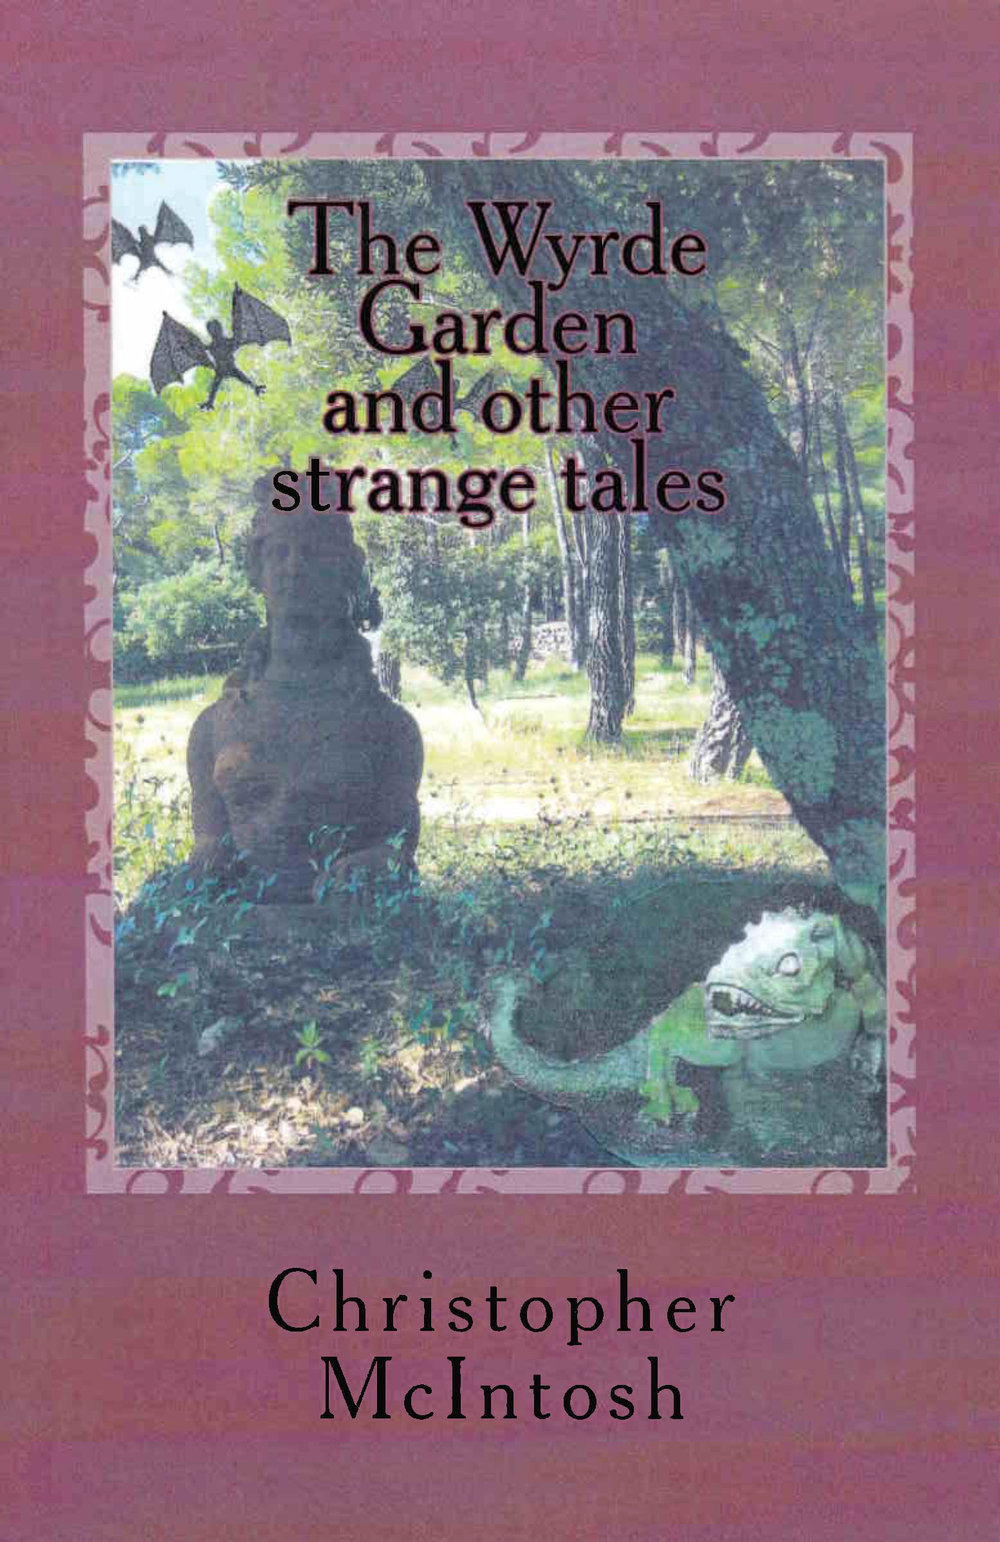 The Wyrde Garden and other strange tales (Vanadis Texts, 2016)